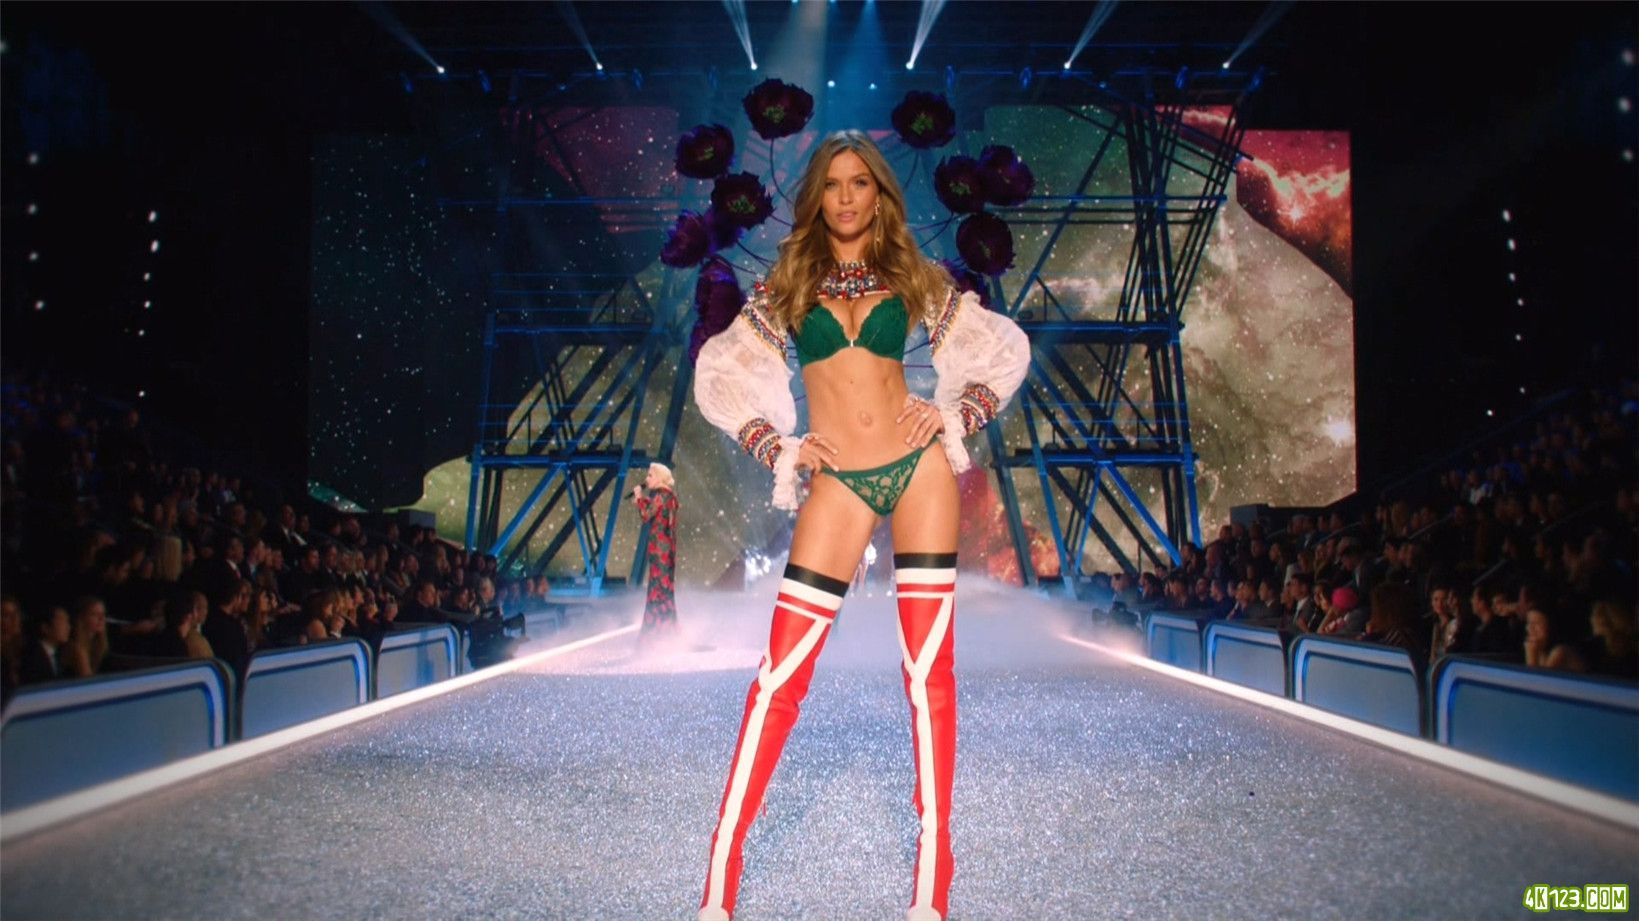 The.Victoria's.Secret.Fashion.Show.2016.1080i.HDTV.40MBit.MPEG-2.DTS-HDMA5..jpg